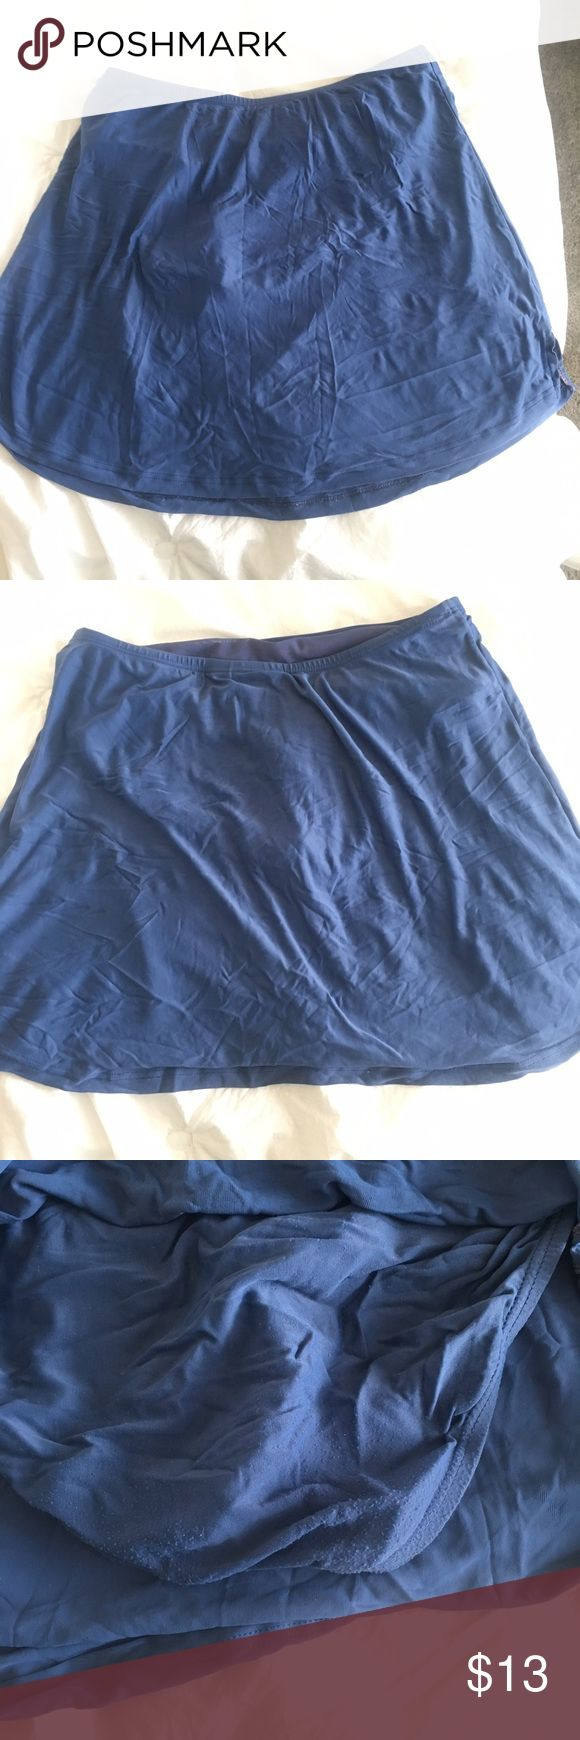 """Blue Skirt Bikini Bottoms Has panty part attached to skirt for a more """"modest"""" look. It is a really pretty dusty blue is best I can describe, true to pictures. Panty part has some wear you can see on outside from sitting in hot tub/ pool. Very comfortable. Skirt part stretches out a lot due to not liking the washing machine. If that bothers you, its best worn dry for laying in the sun or strolling around town on vacation. Fits best 8-12. croft & barrow Swim"""